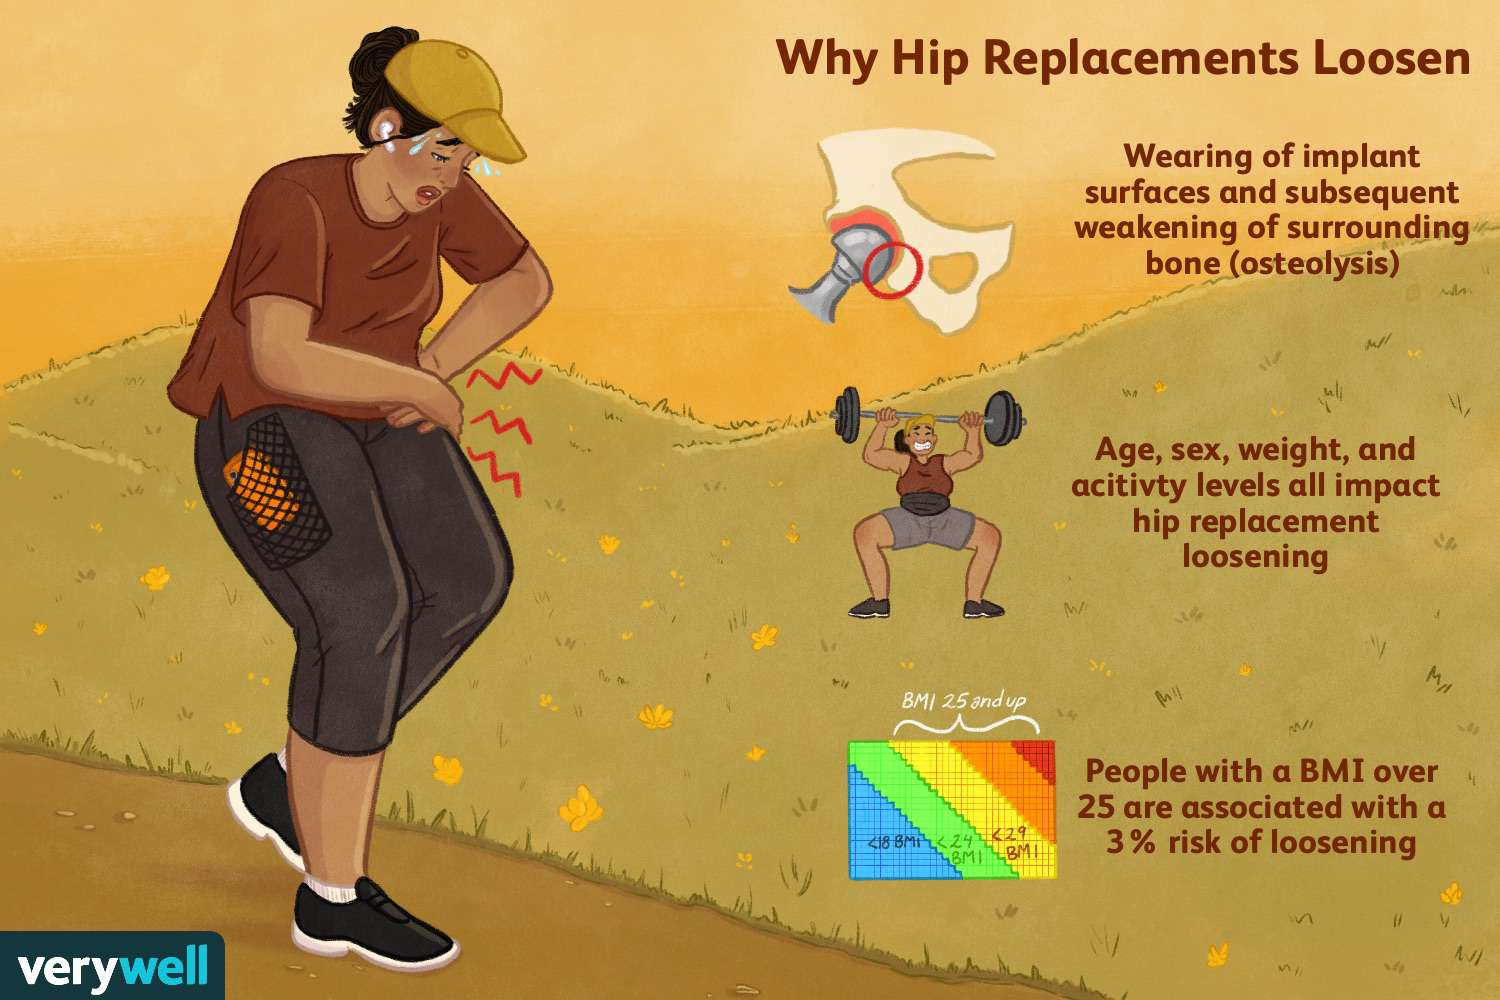 Why hip replacements loosen.